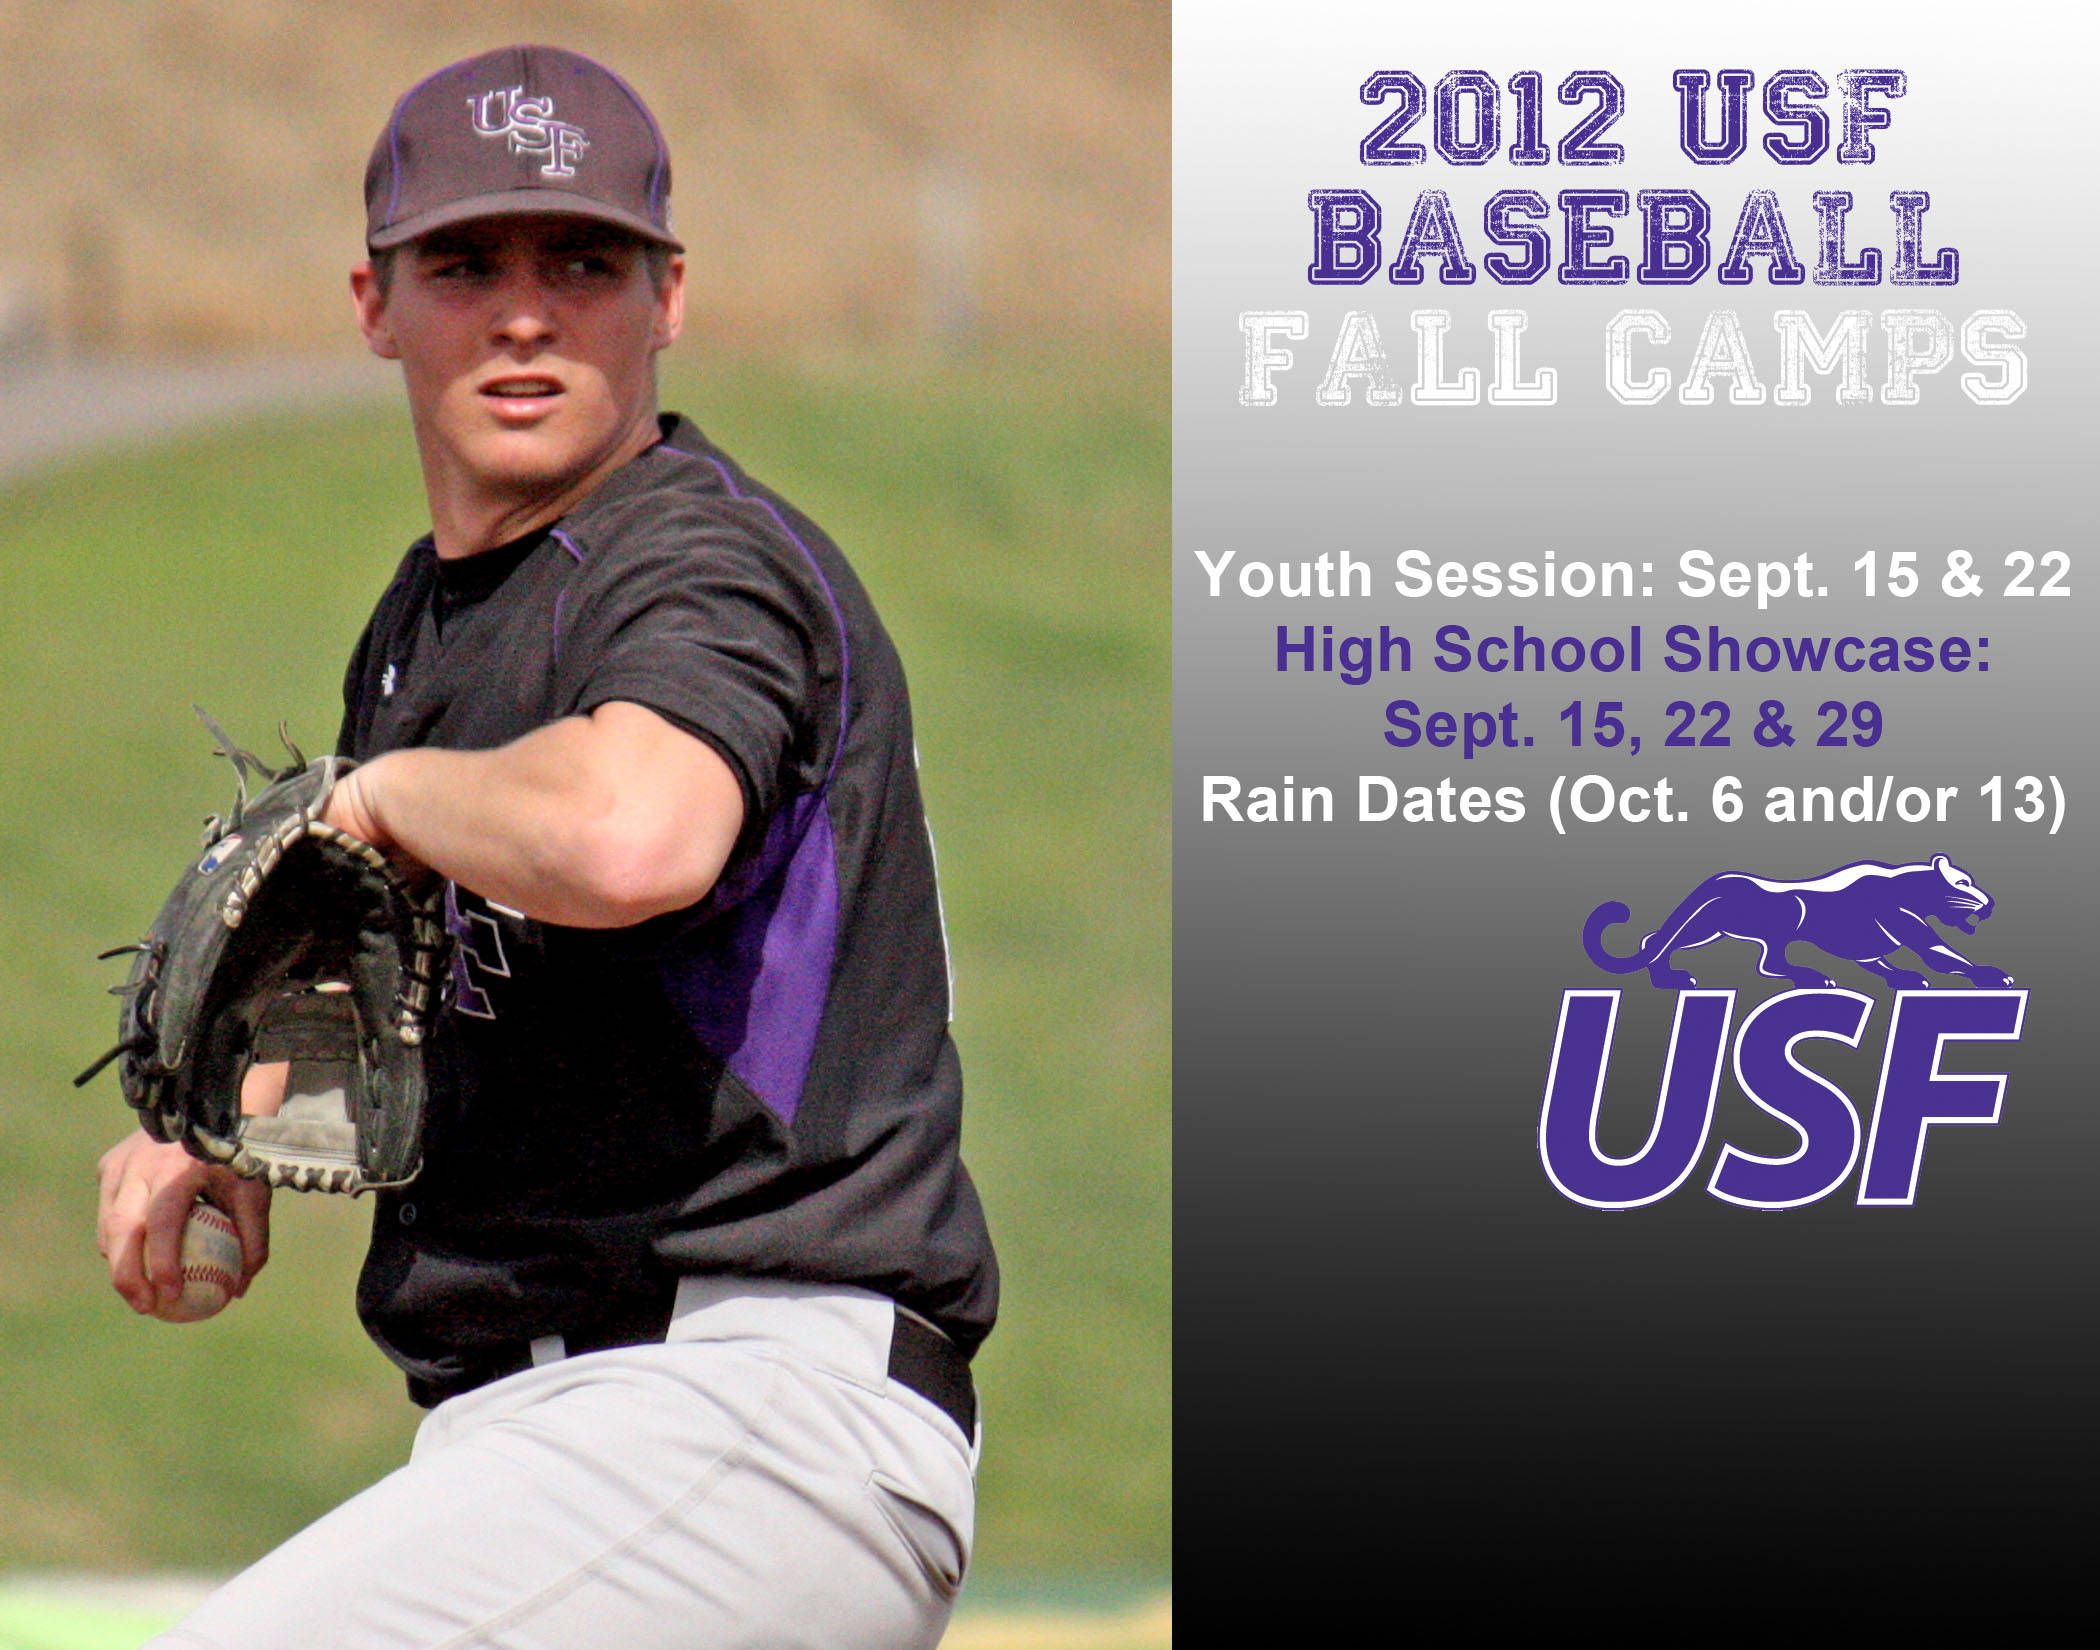 Registration Now Open For Fall Baseball Camps